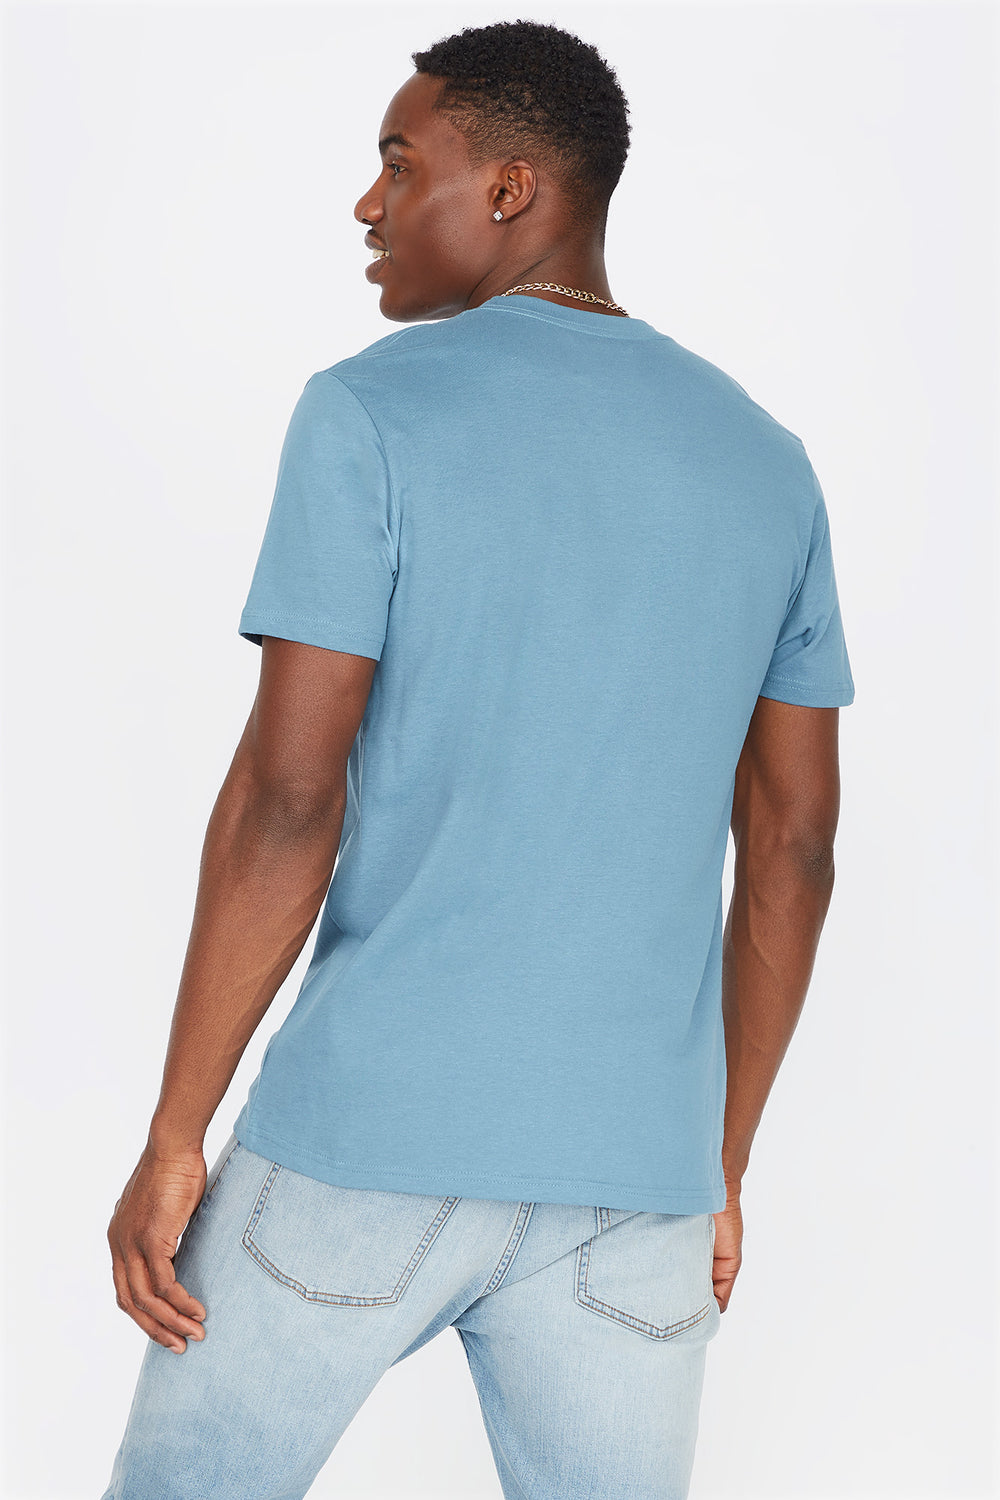 Everyday Basic Crew Neck T-Shirt Light Denim Blue